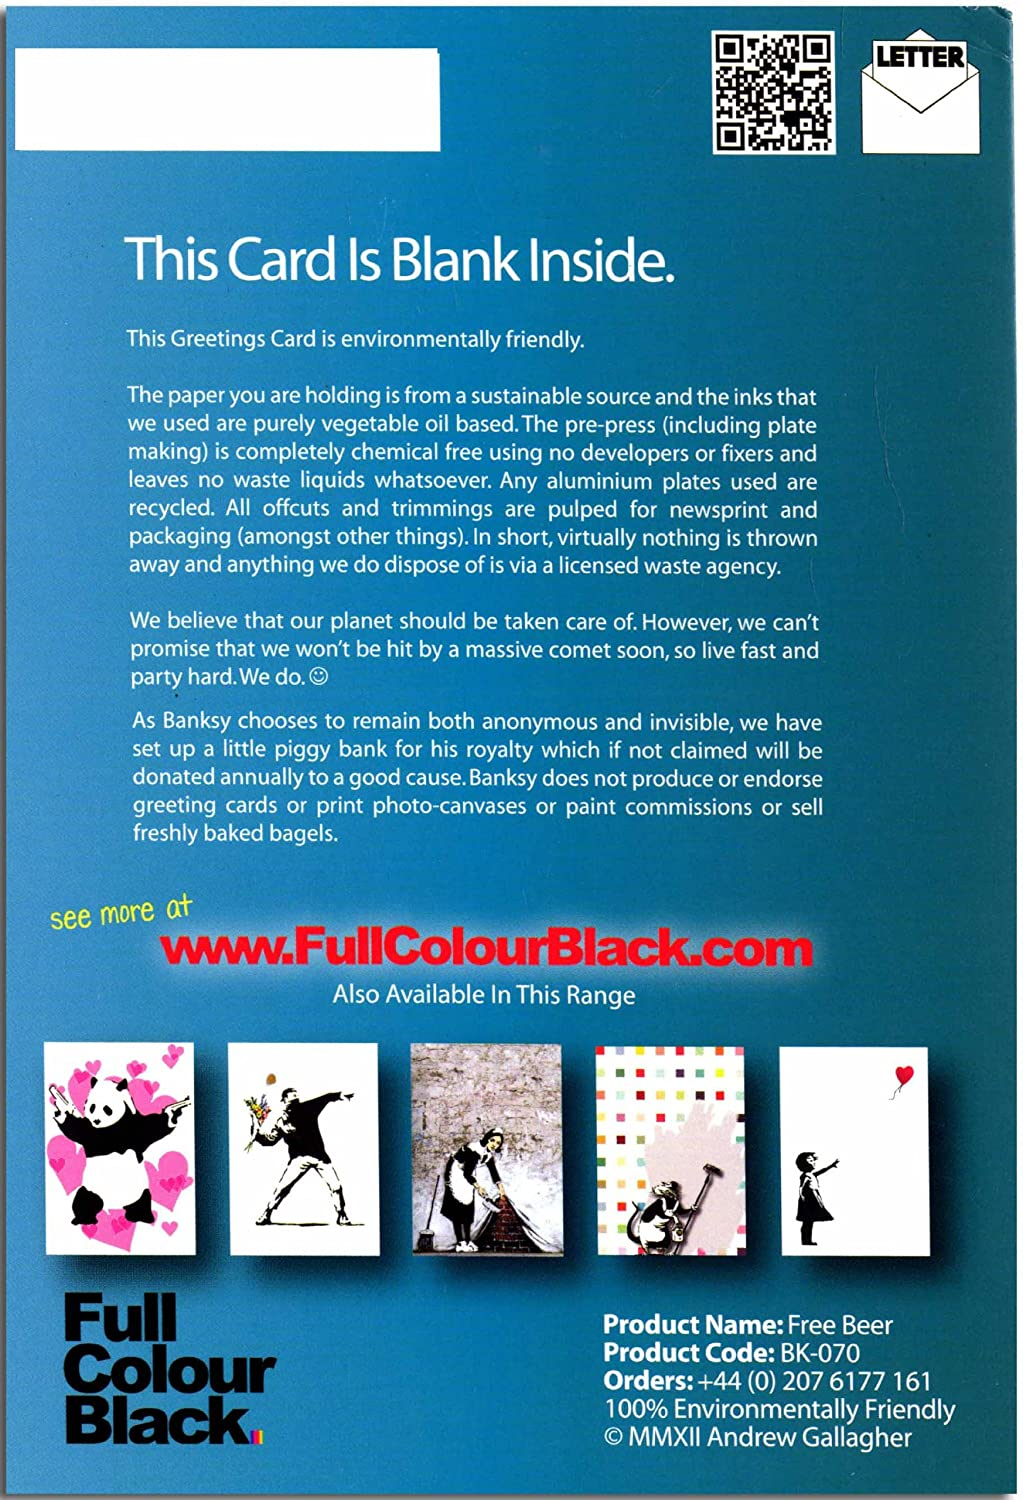 Banksy Inspired Art Open Greeting Card Free Beer 120x170mm